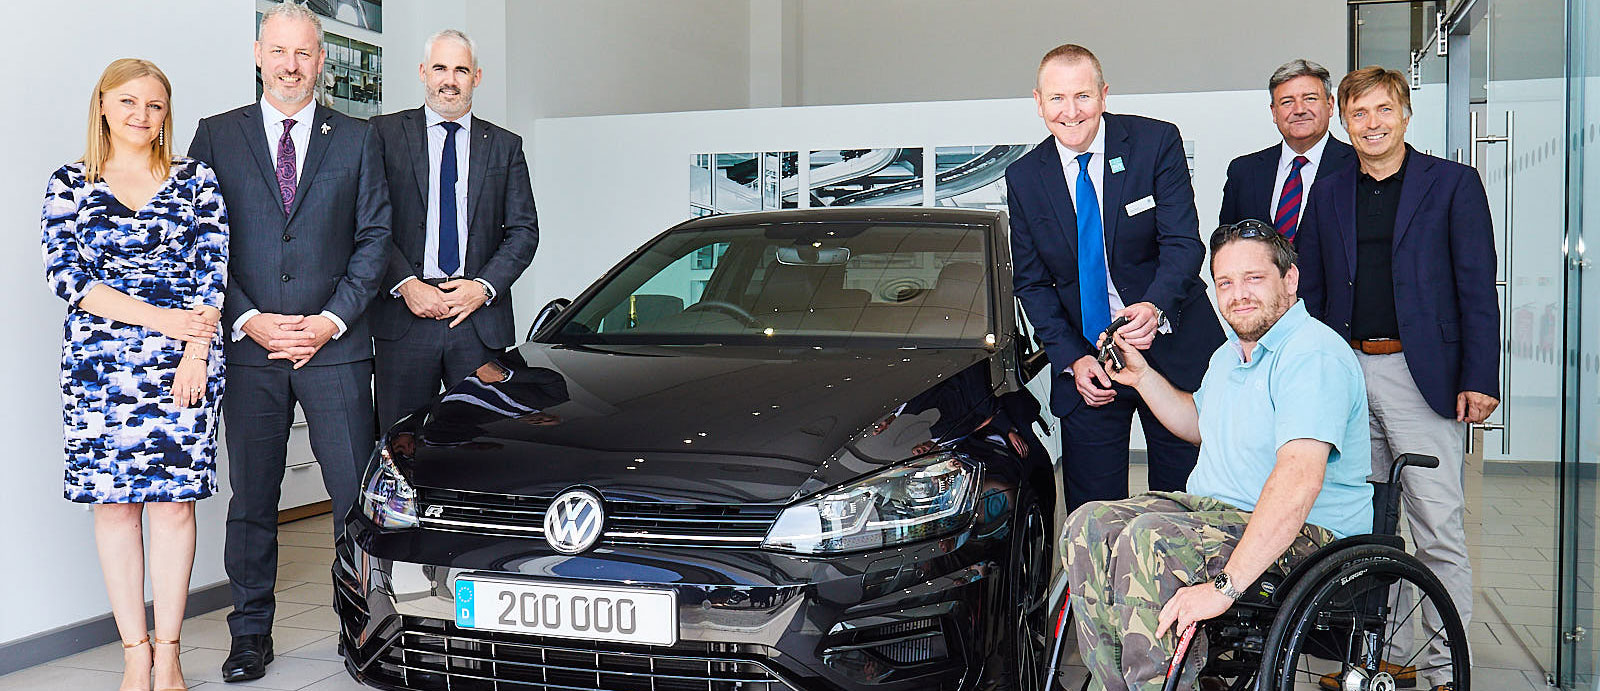 Production milestone as Volkswagen delivers 200,000th 'R'